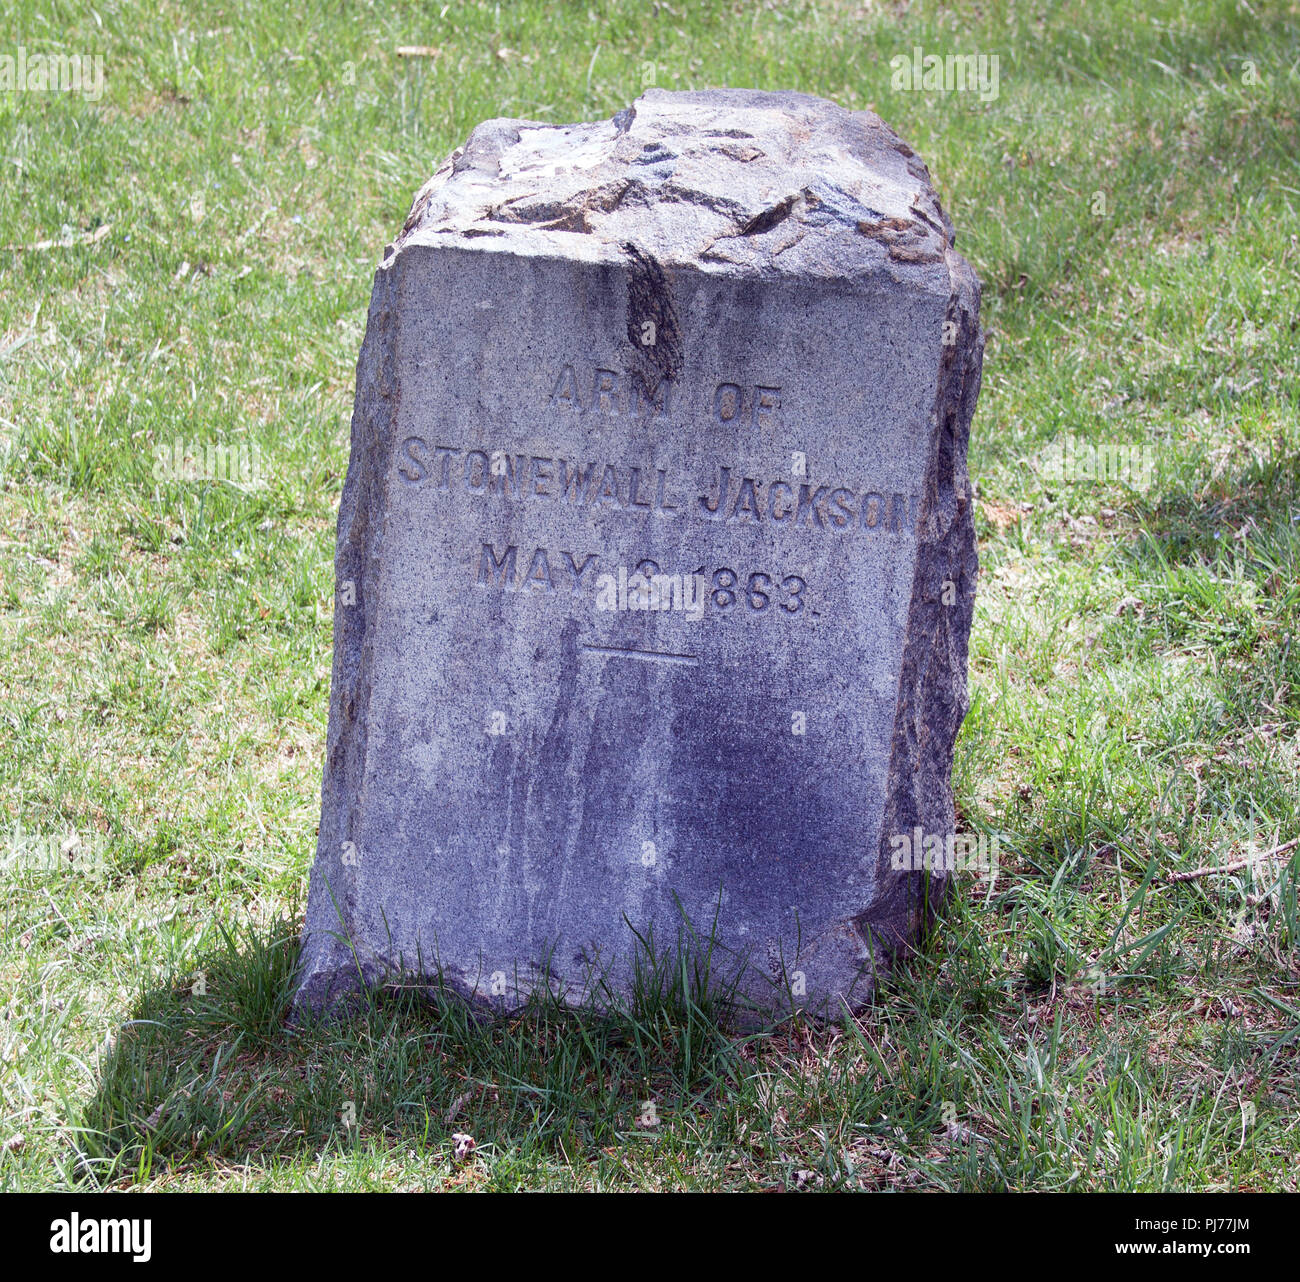 Confederate General Stonewall Jacksons chopped off arm is buried in a cemetery and given its own tombstone near Fredericksburg Virginia. - Stock Image